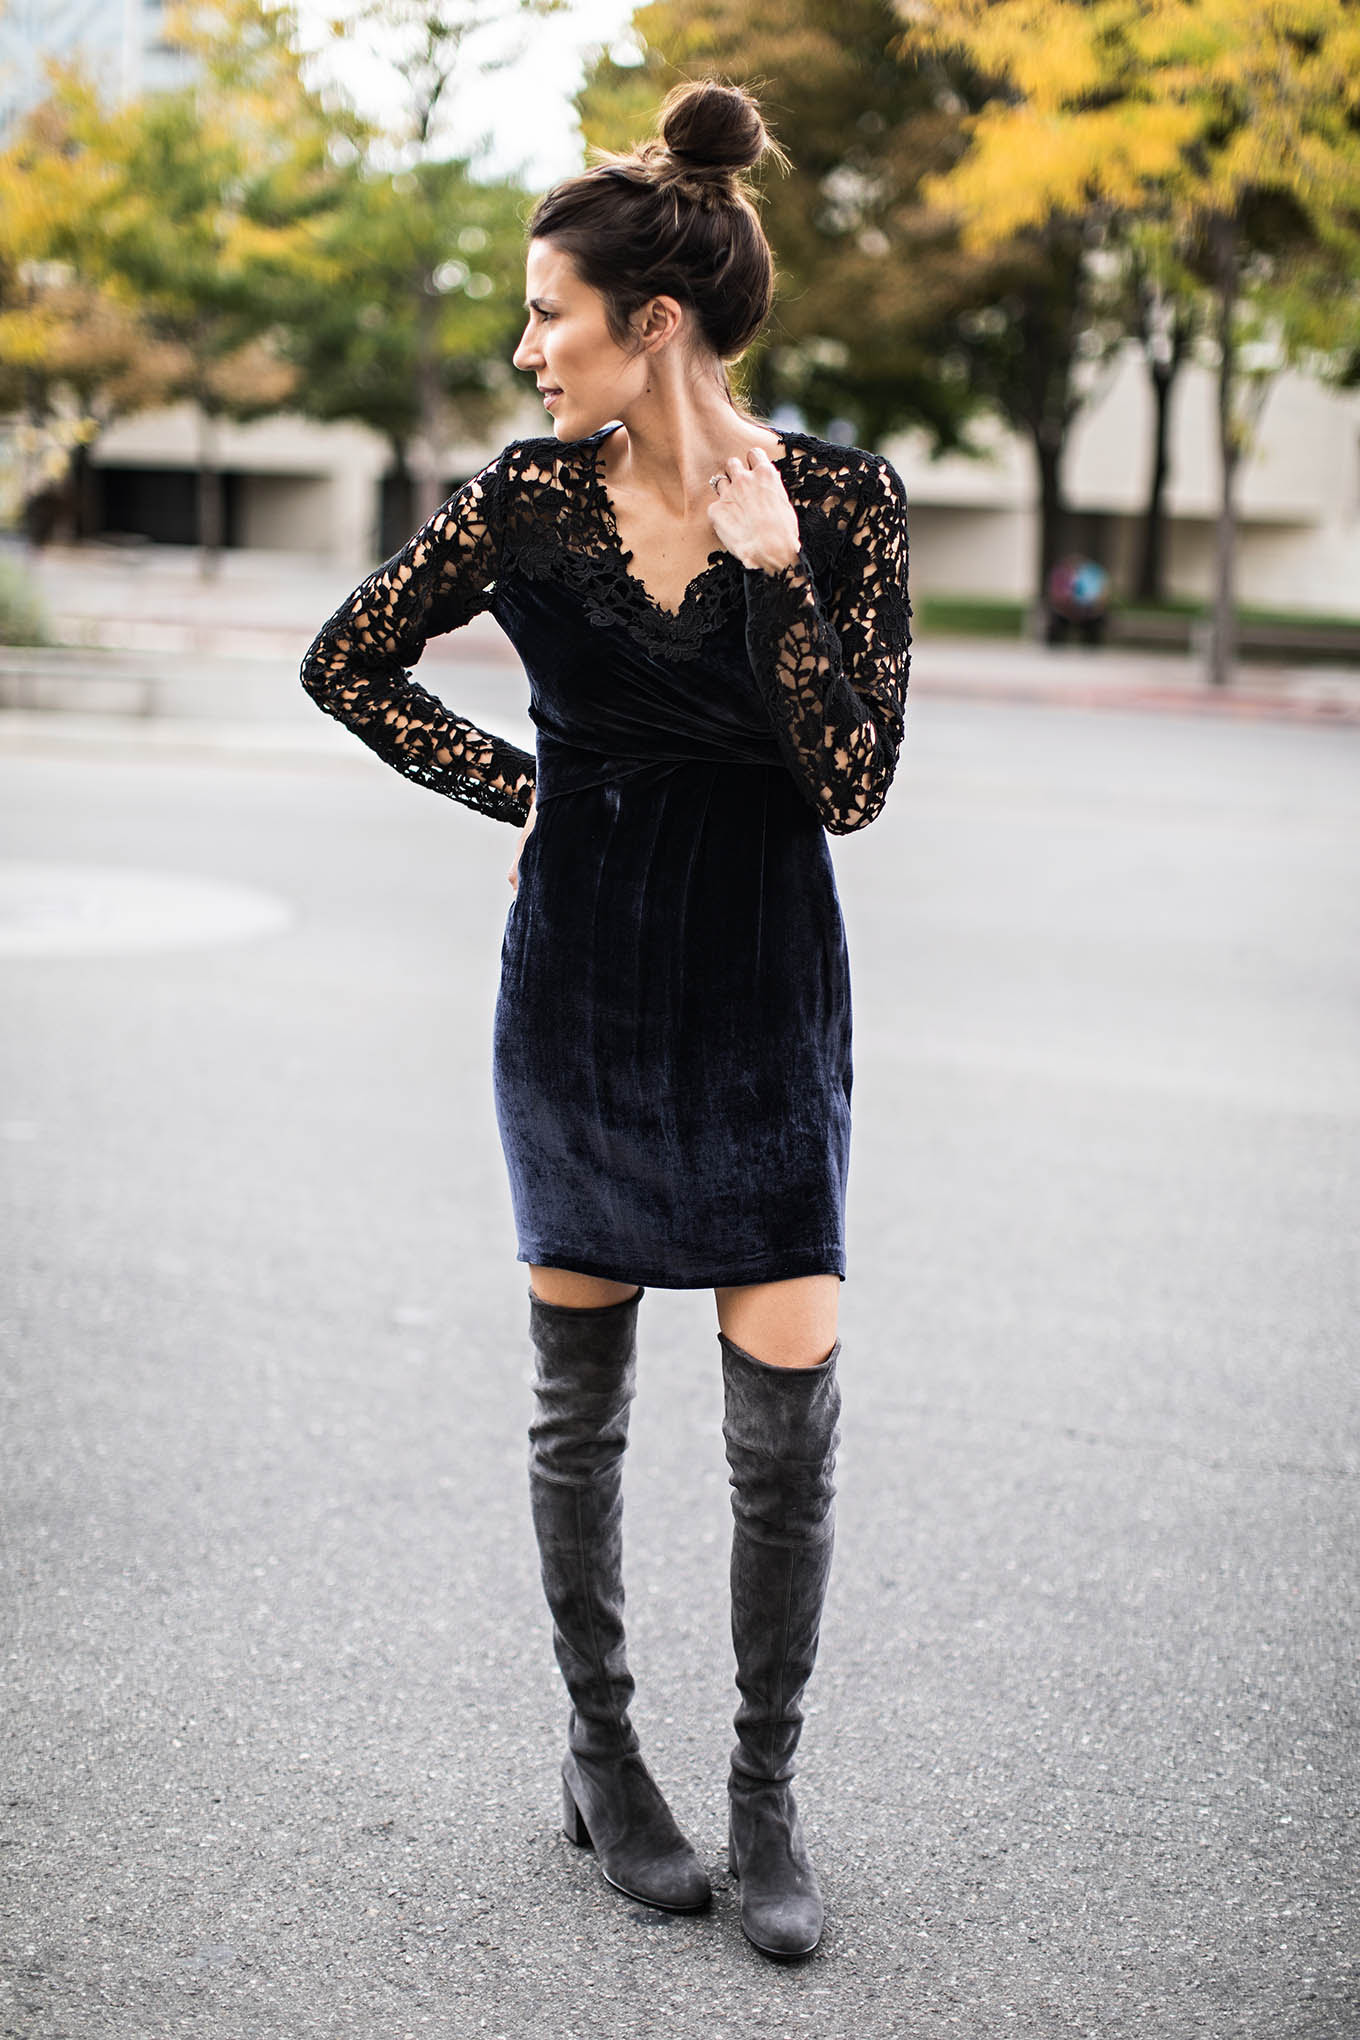 Rotorua bodycon dress knee high boots and shorts outfit usa hoodies